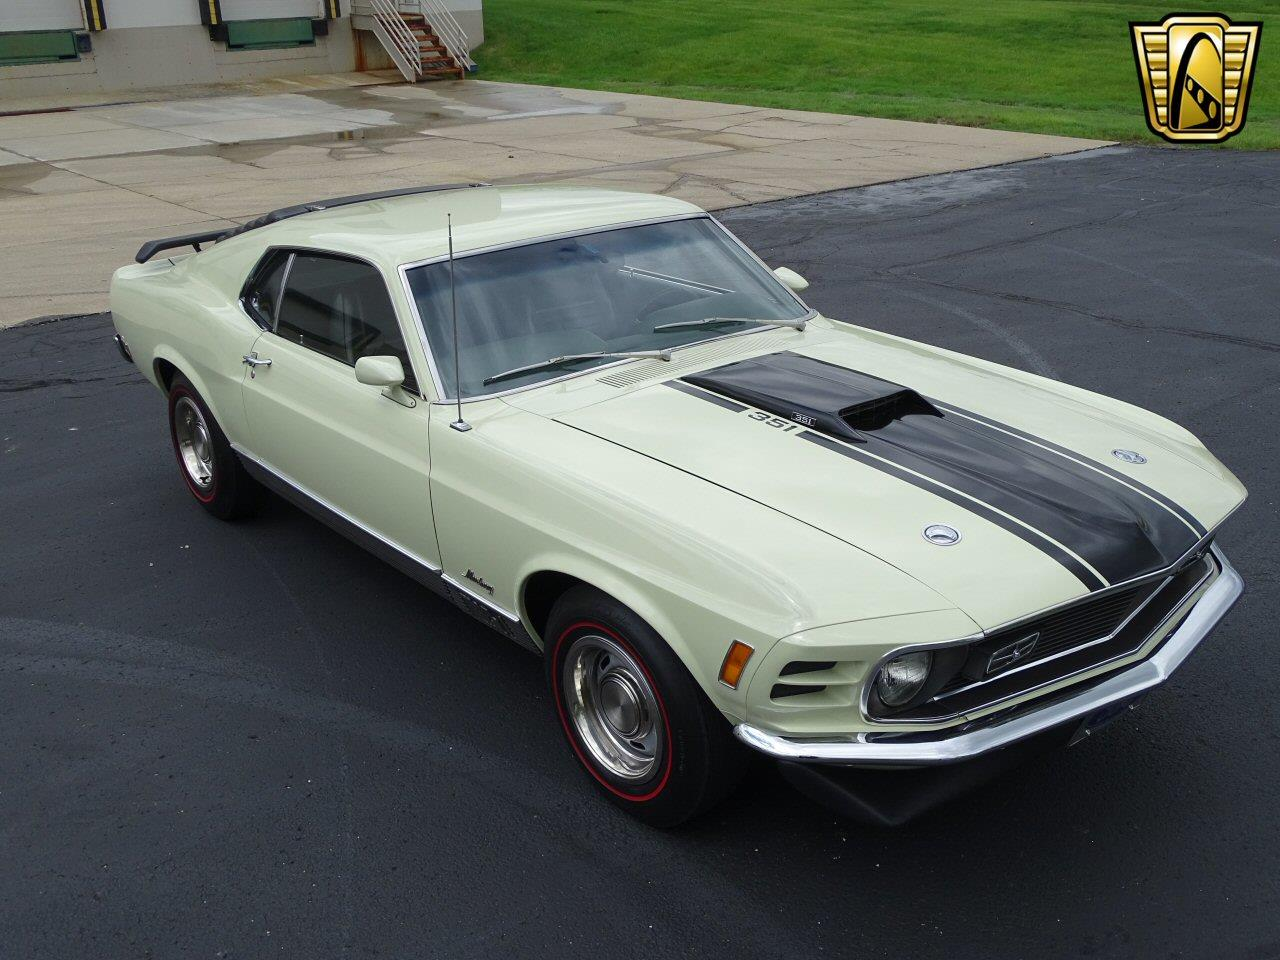 Large Picture of Classic '70 Ford Mustang located in Indiana - $47,595.00 Offered by Gateway Classic Cars - Indianapolis - L70Y